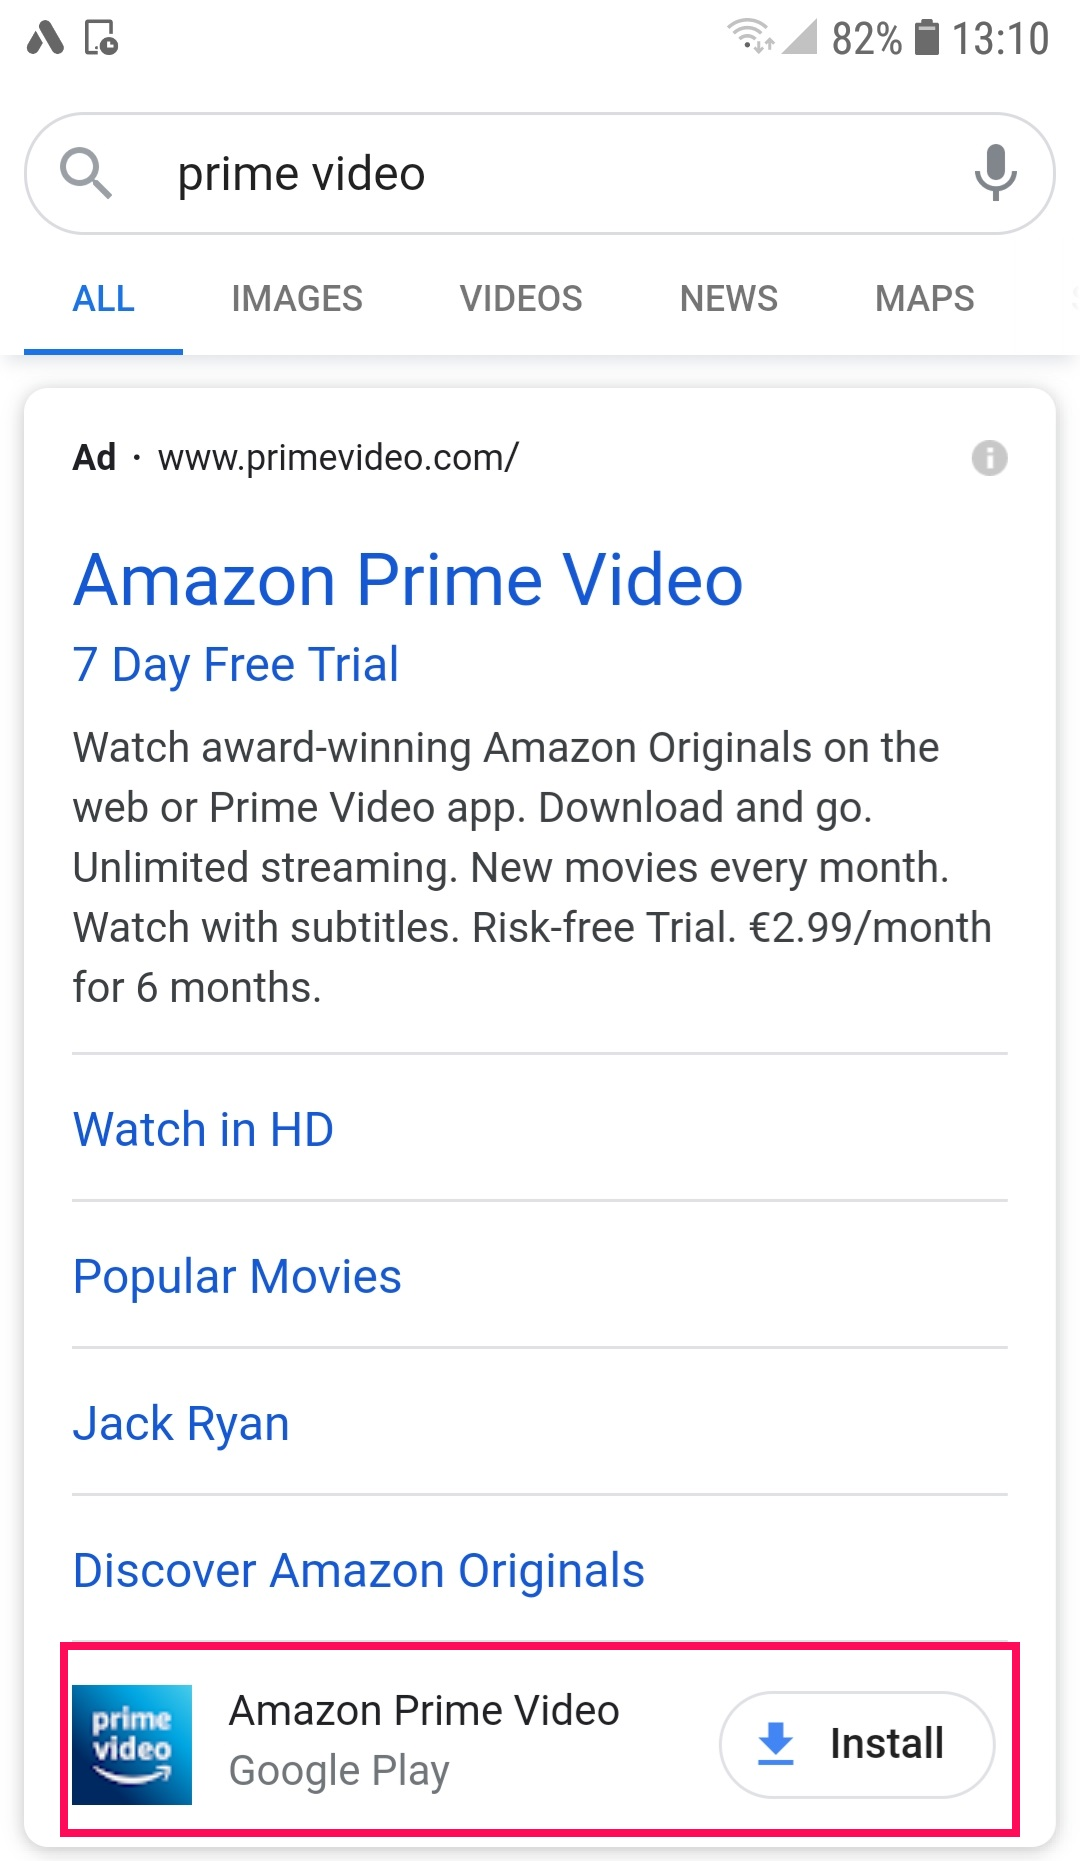 Google Ads app extension in Prime Video ad